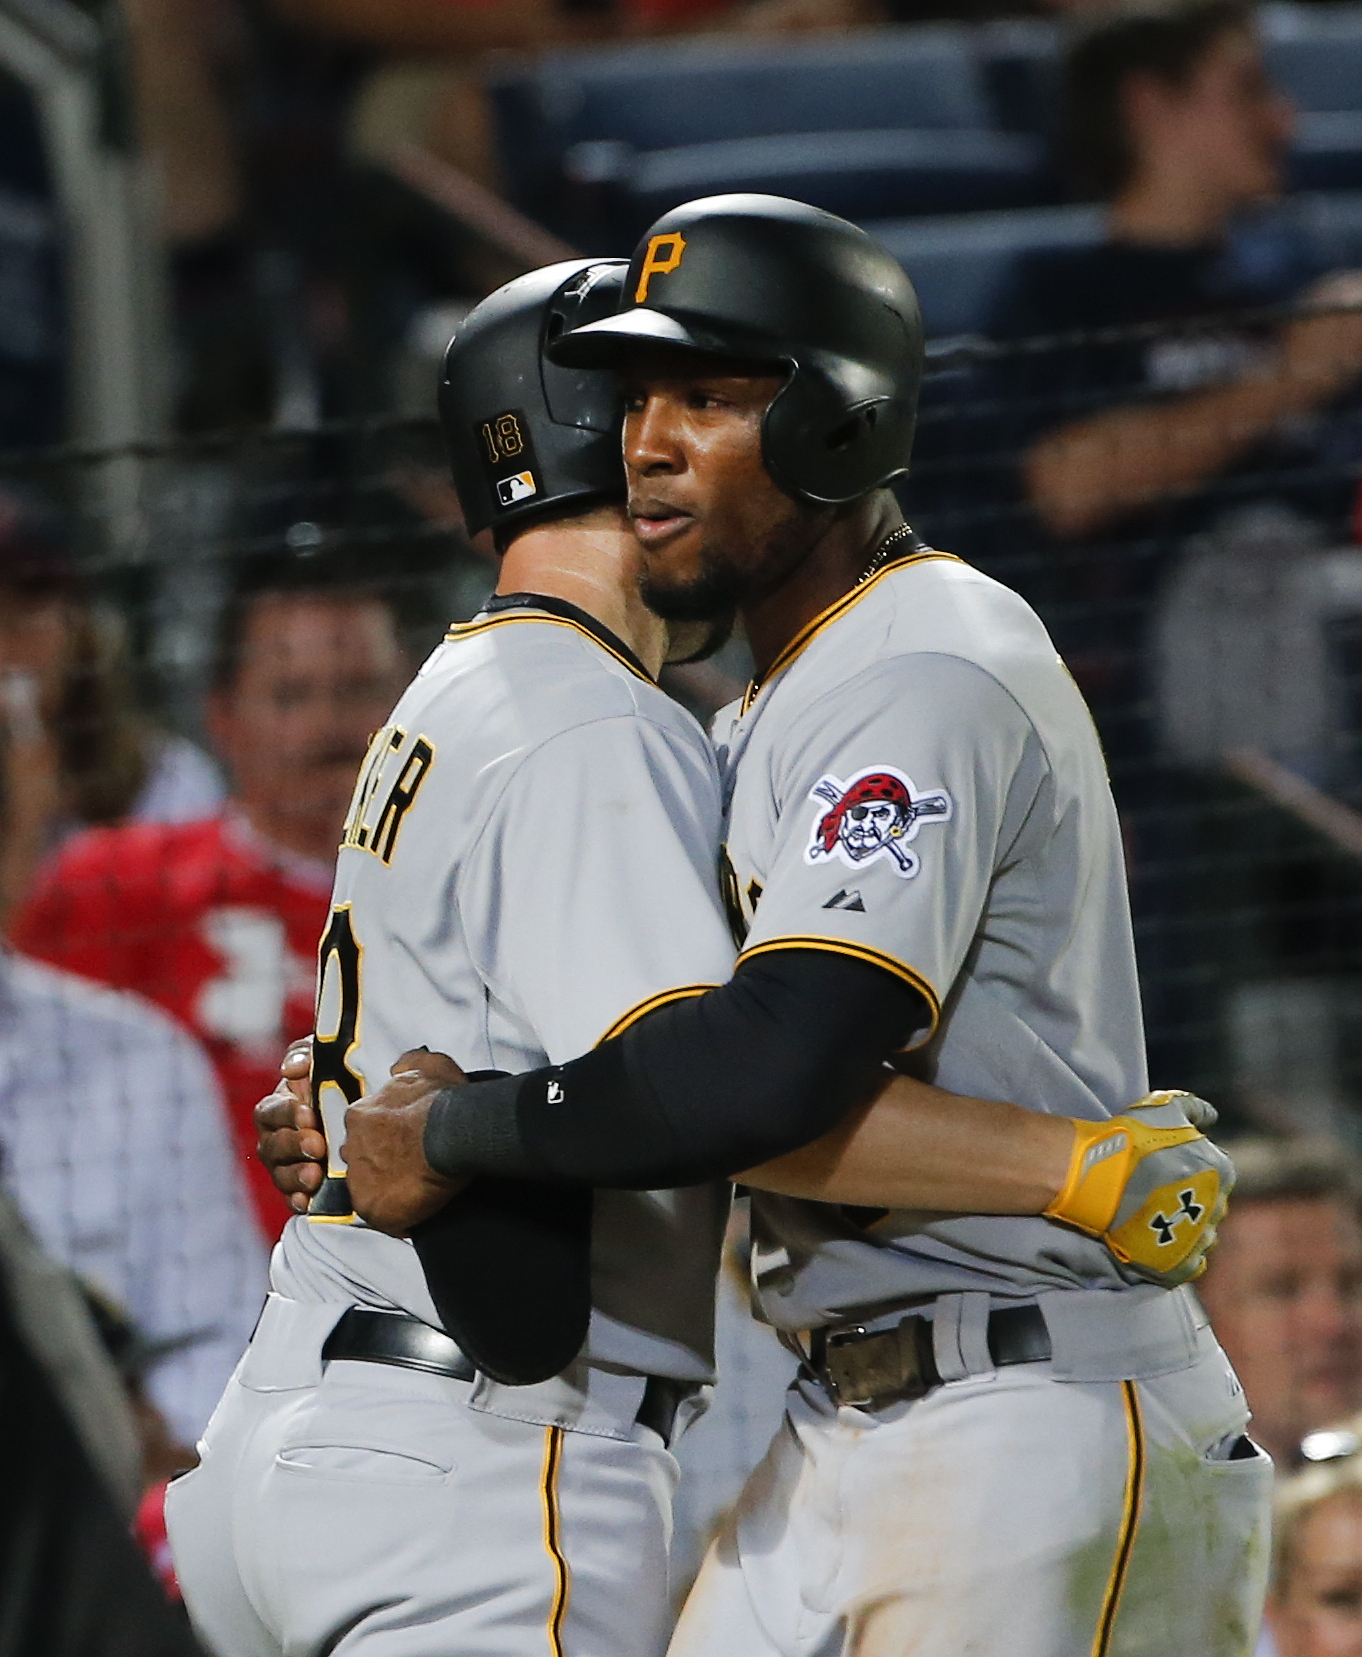 Pittsburgh Pirates second baseman Neil Walker (18), left, is embraces by Starling Marte (6) after hitting a three-run home run in the fifth inning of baseball game against the Atlanta Braves Friday, June 5, 2015, in Atlanta. (AP Photo/John Bazemore)